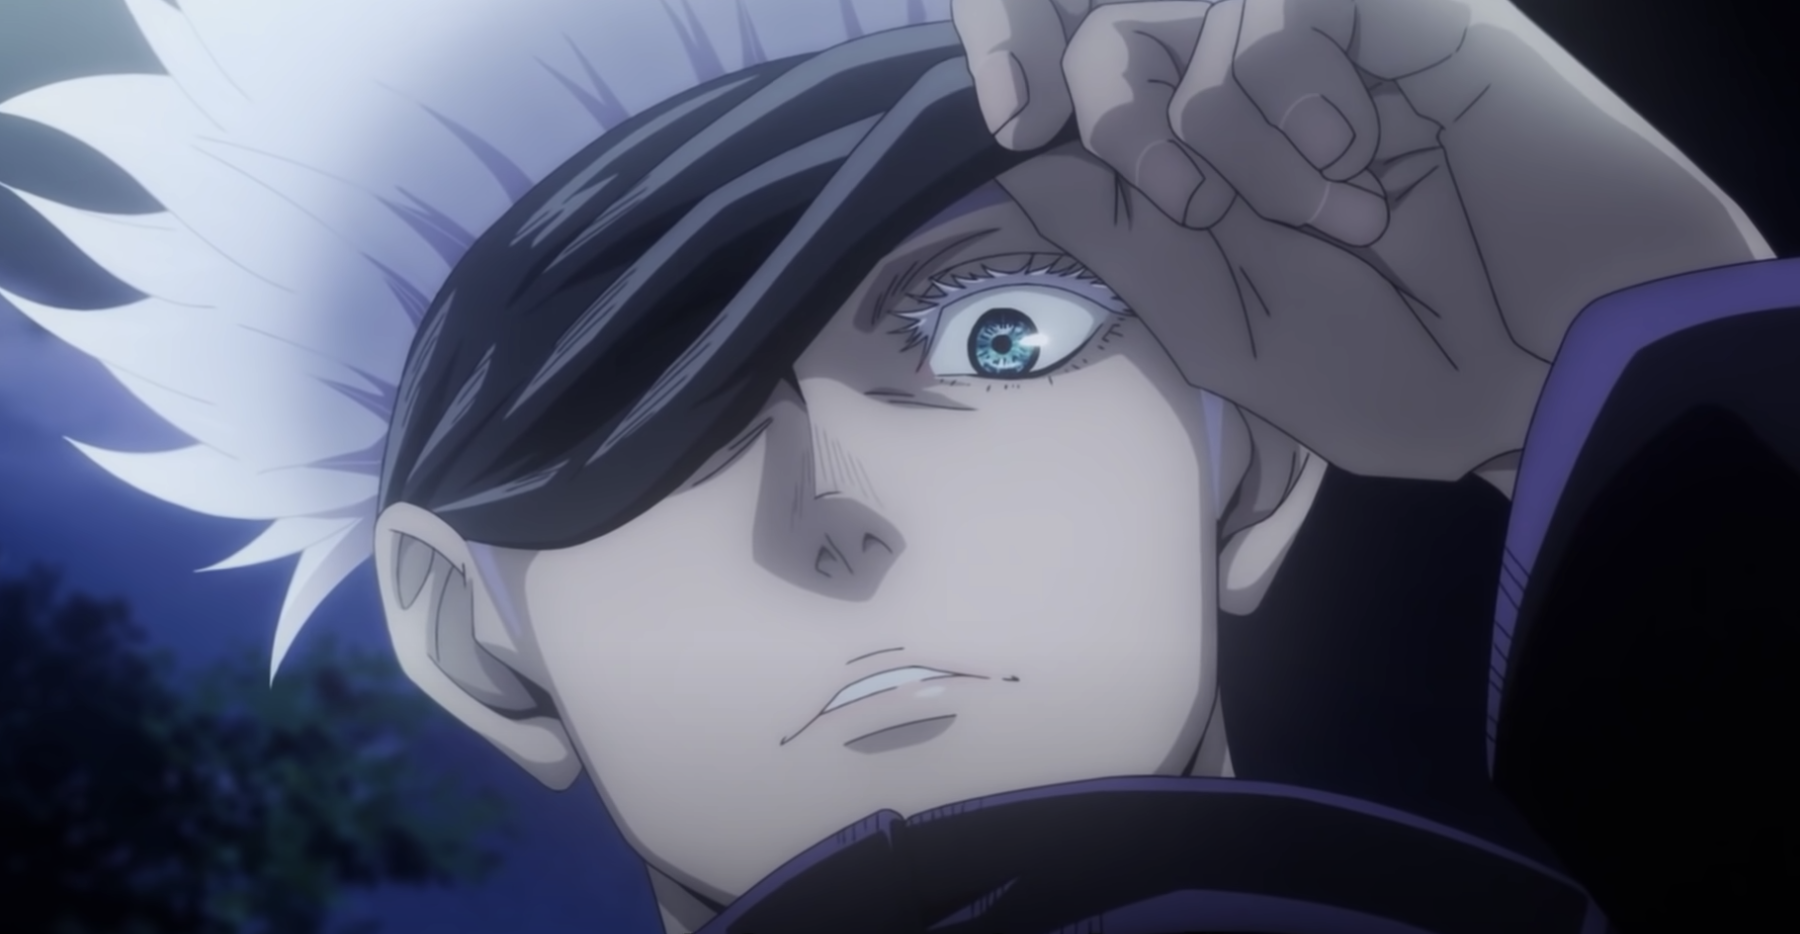 An anime character taking off a blindfold